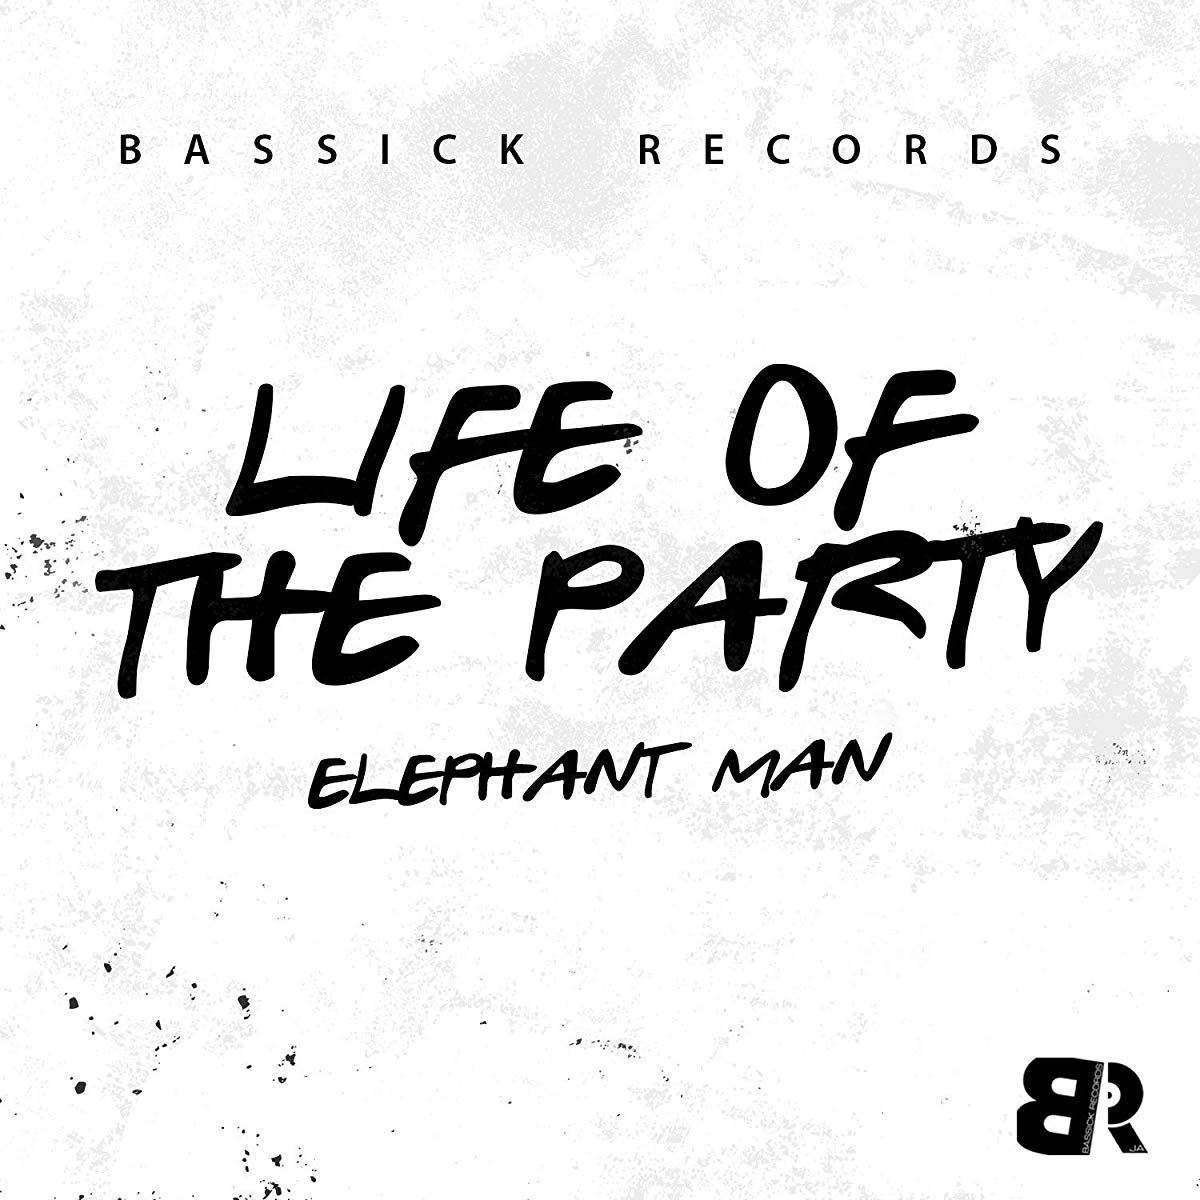 Life of the Party d'Elephant Man, une reprise dancehall d'I Don't Care d'Ed Sheeran et Justin Bieber